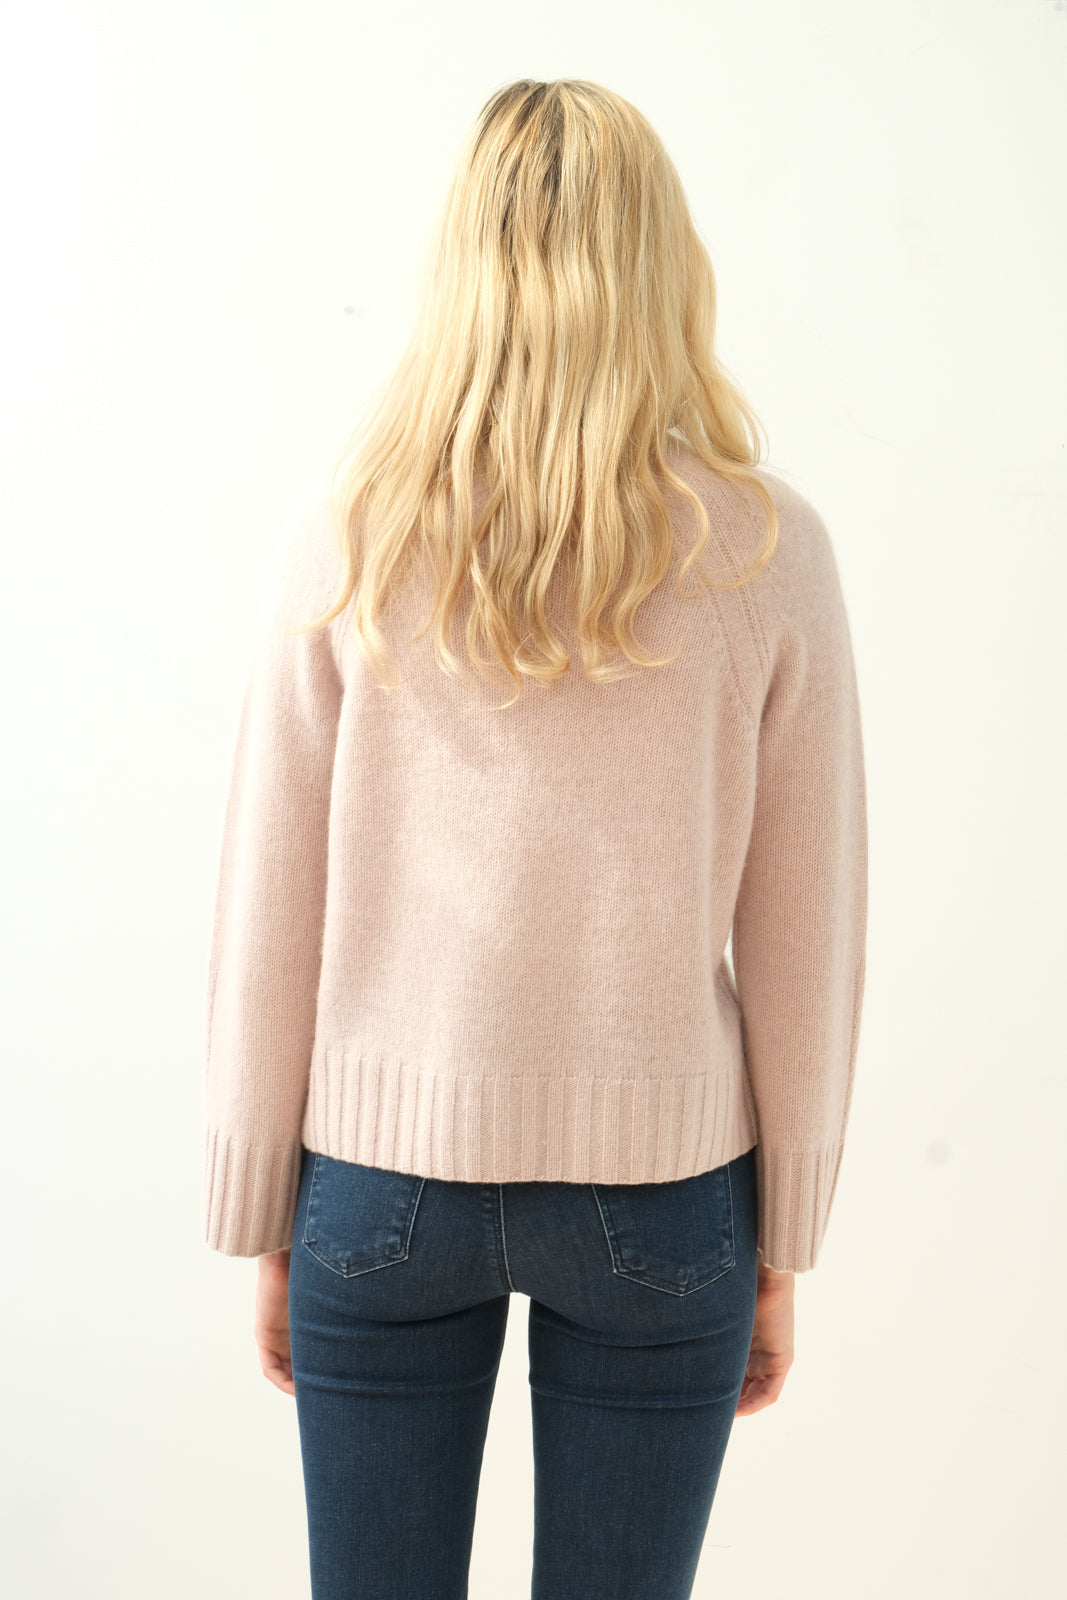 360 Leighton knit in adobe pink